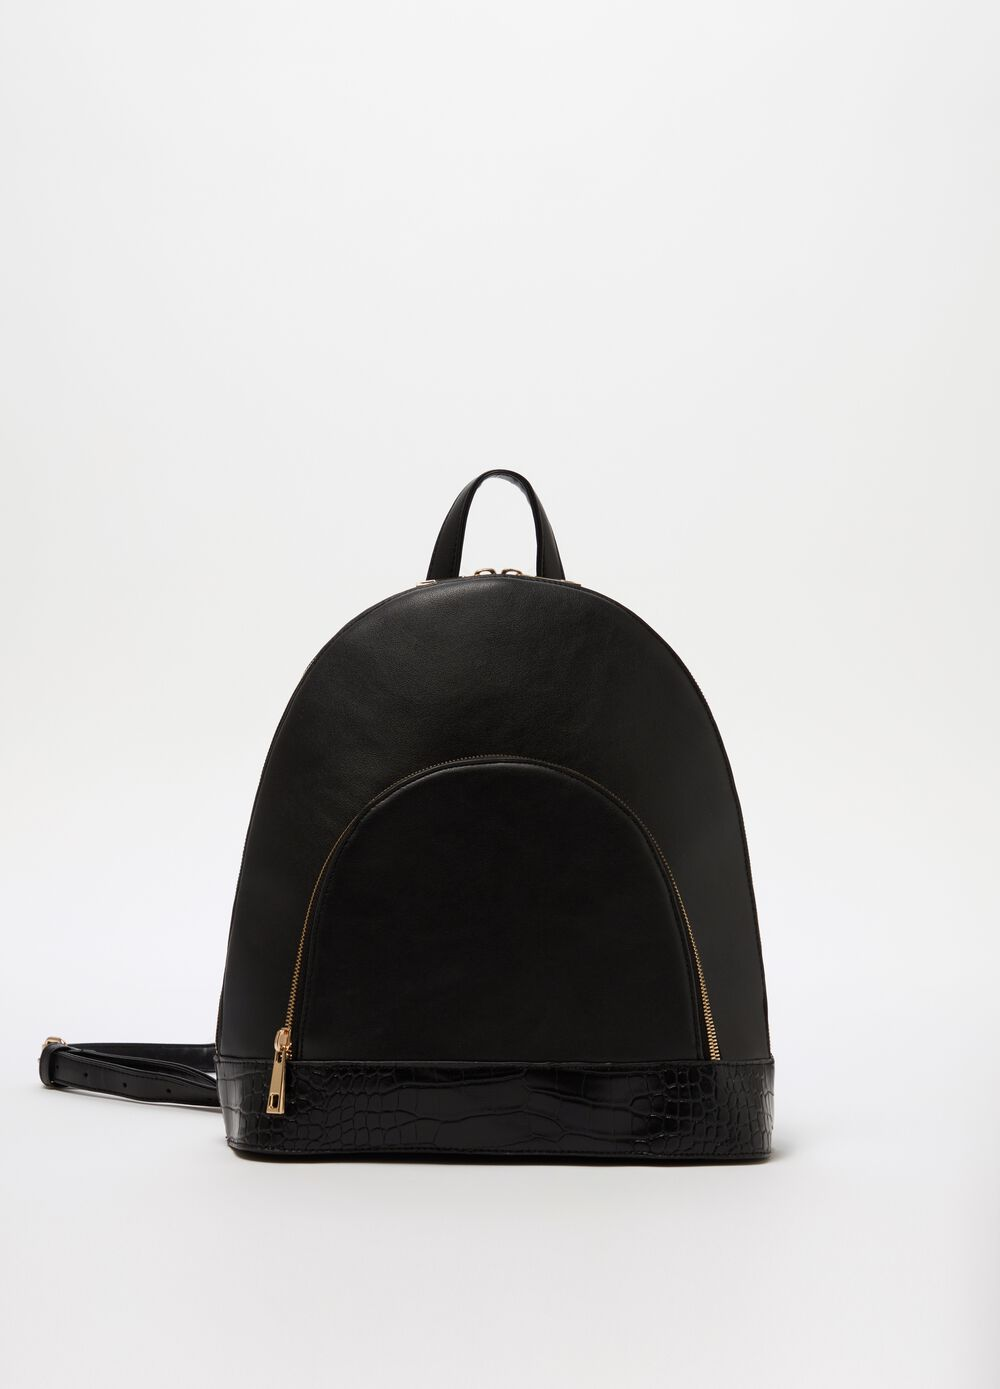 Structured backpack with front pocket